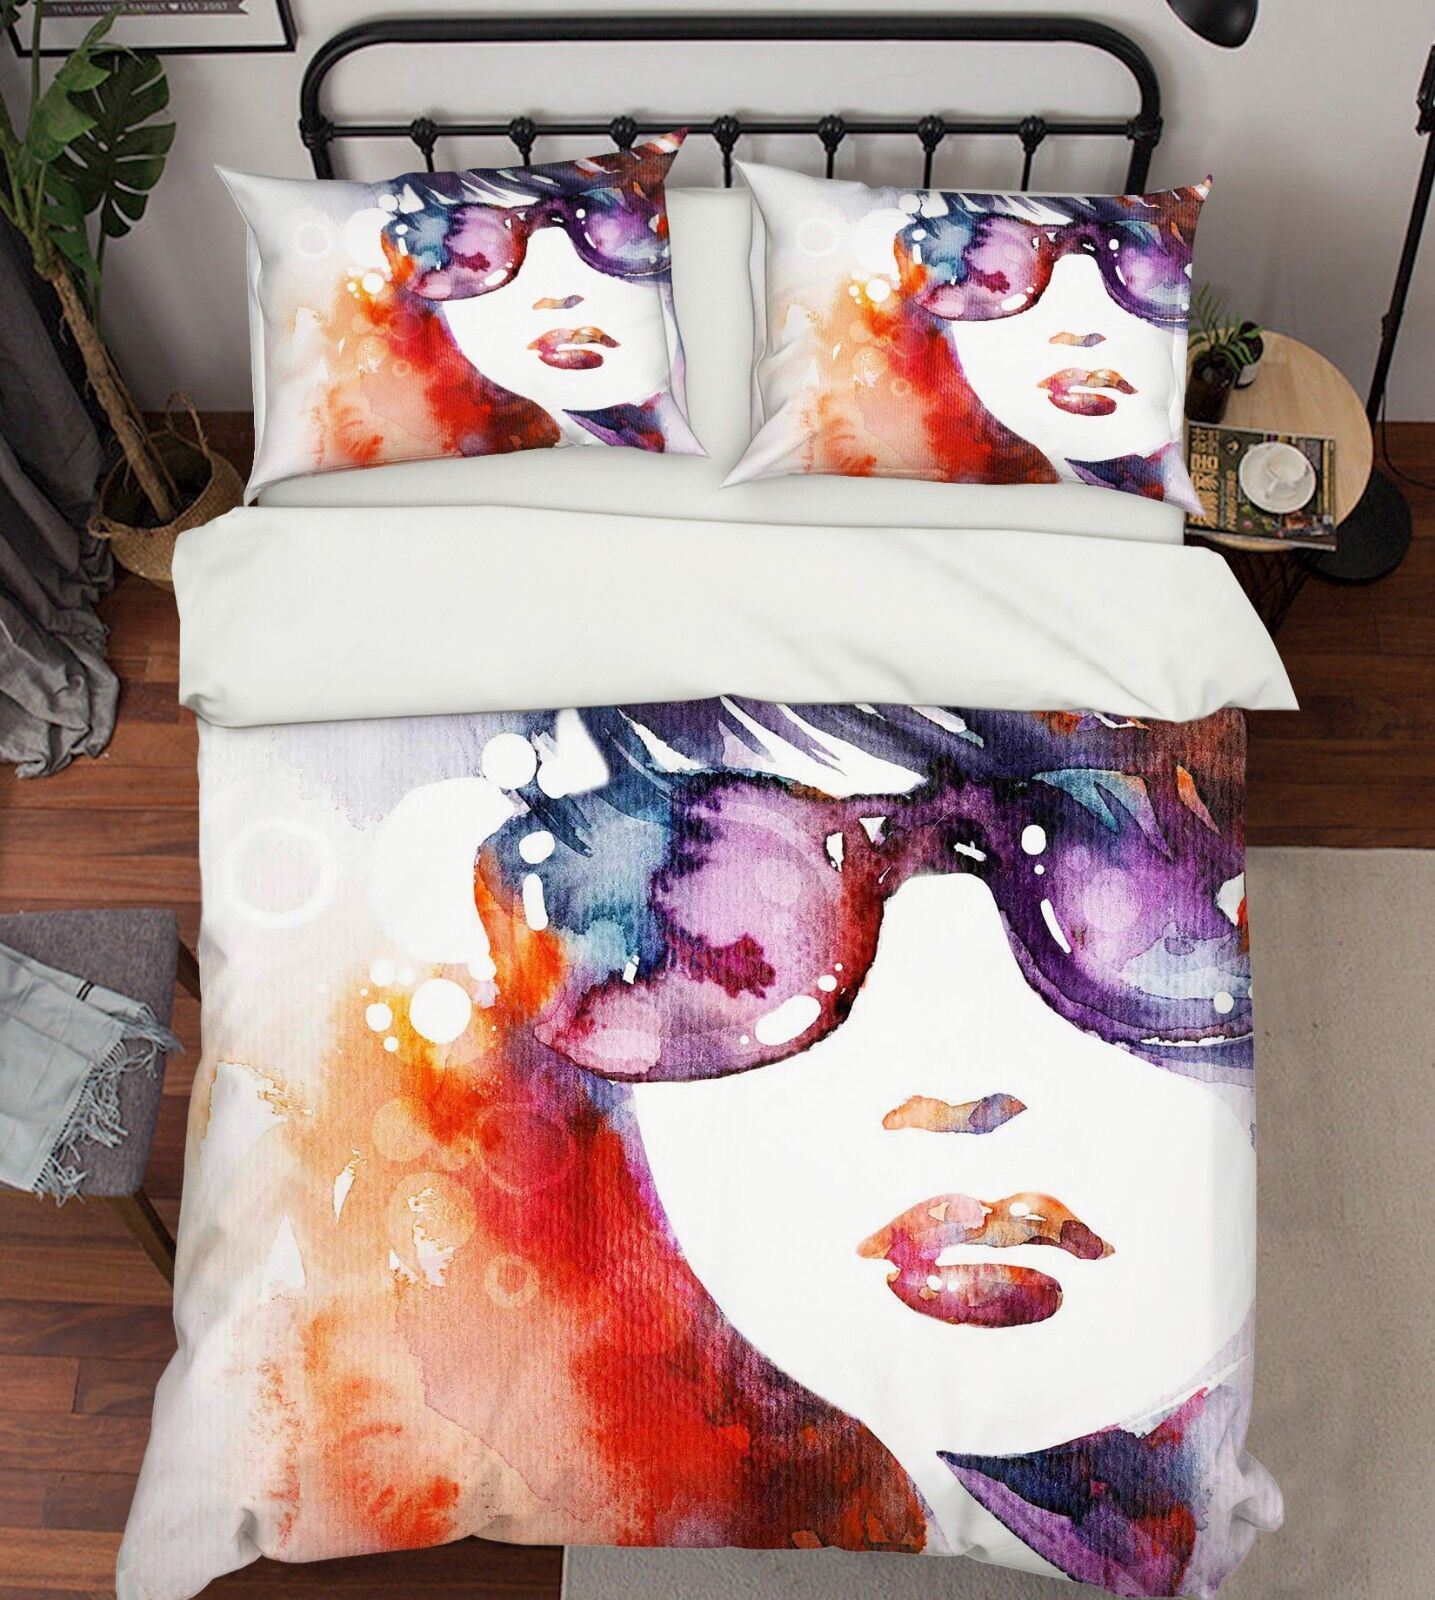 3D Painted Girl 686 Bed Pillowcases Quilt Duvet Cover Set Single King UK Summer